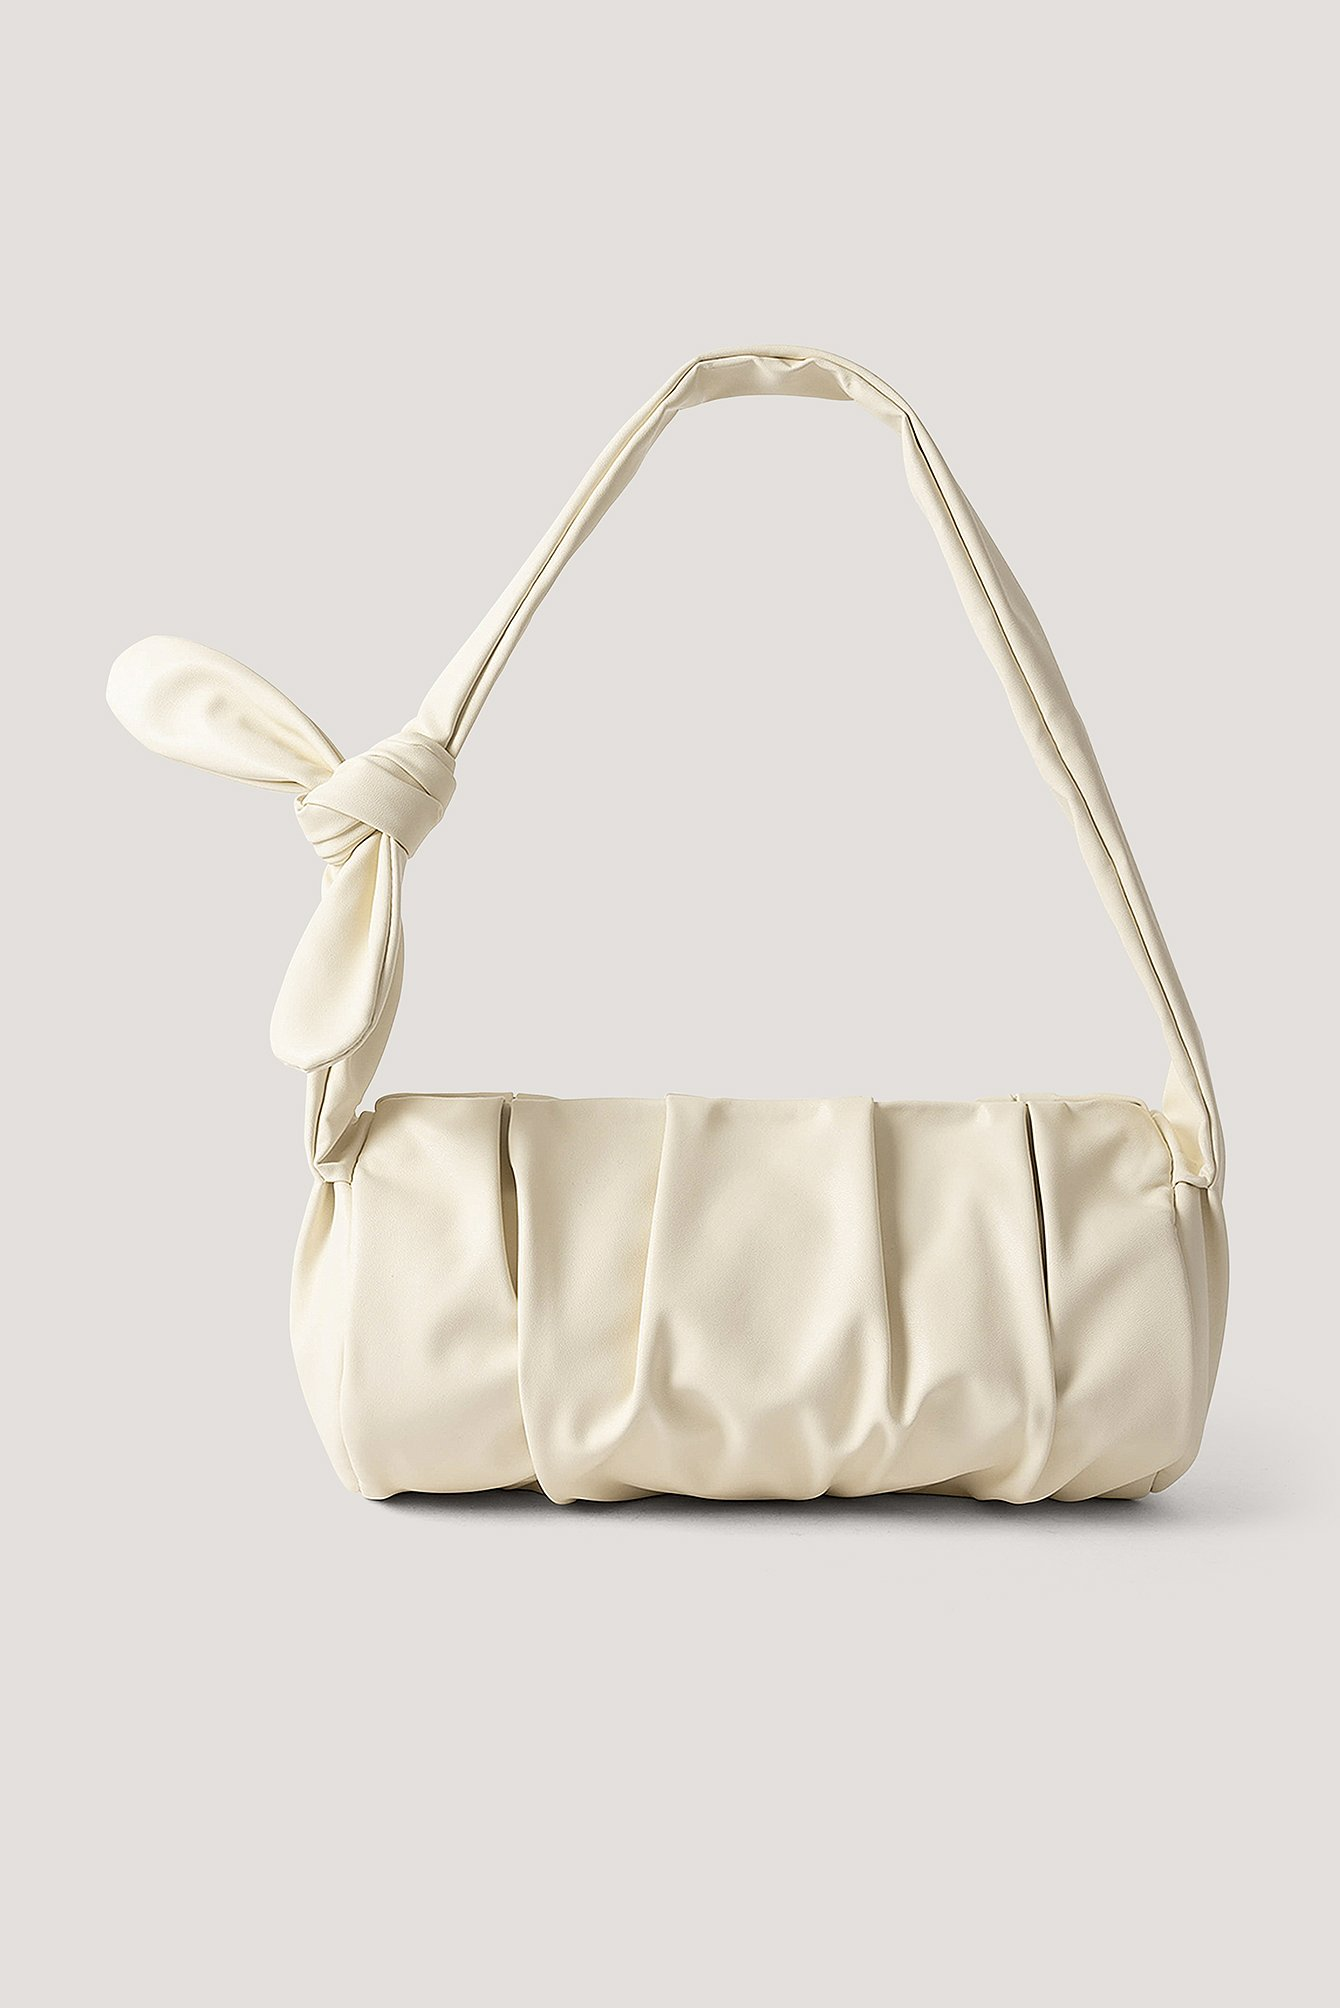 NA-KD Accessories Draped Knot Strap Bag - Offwhite